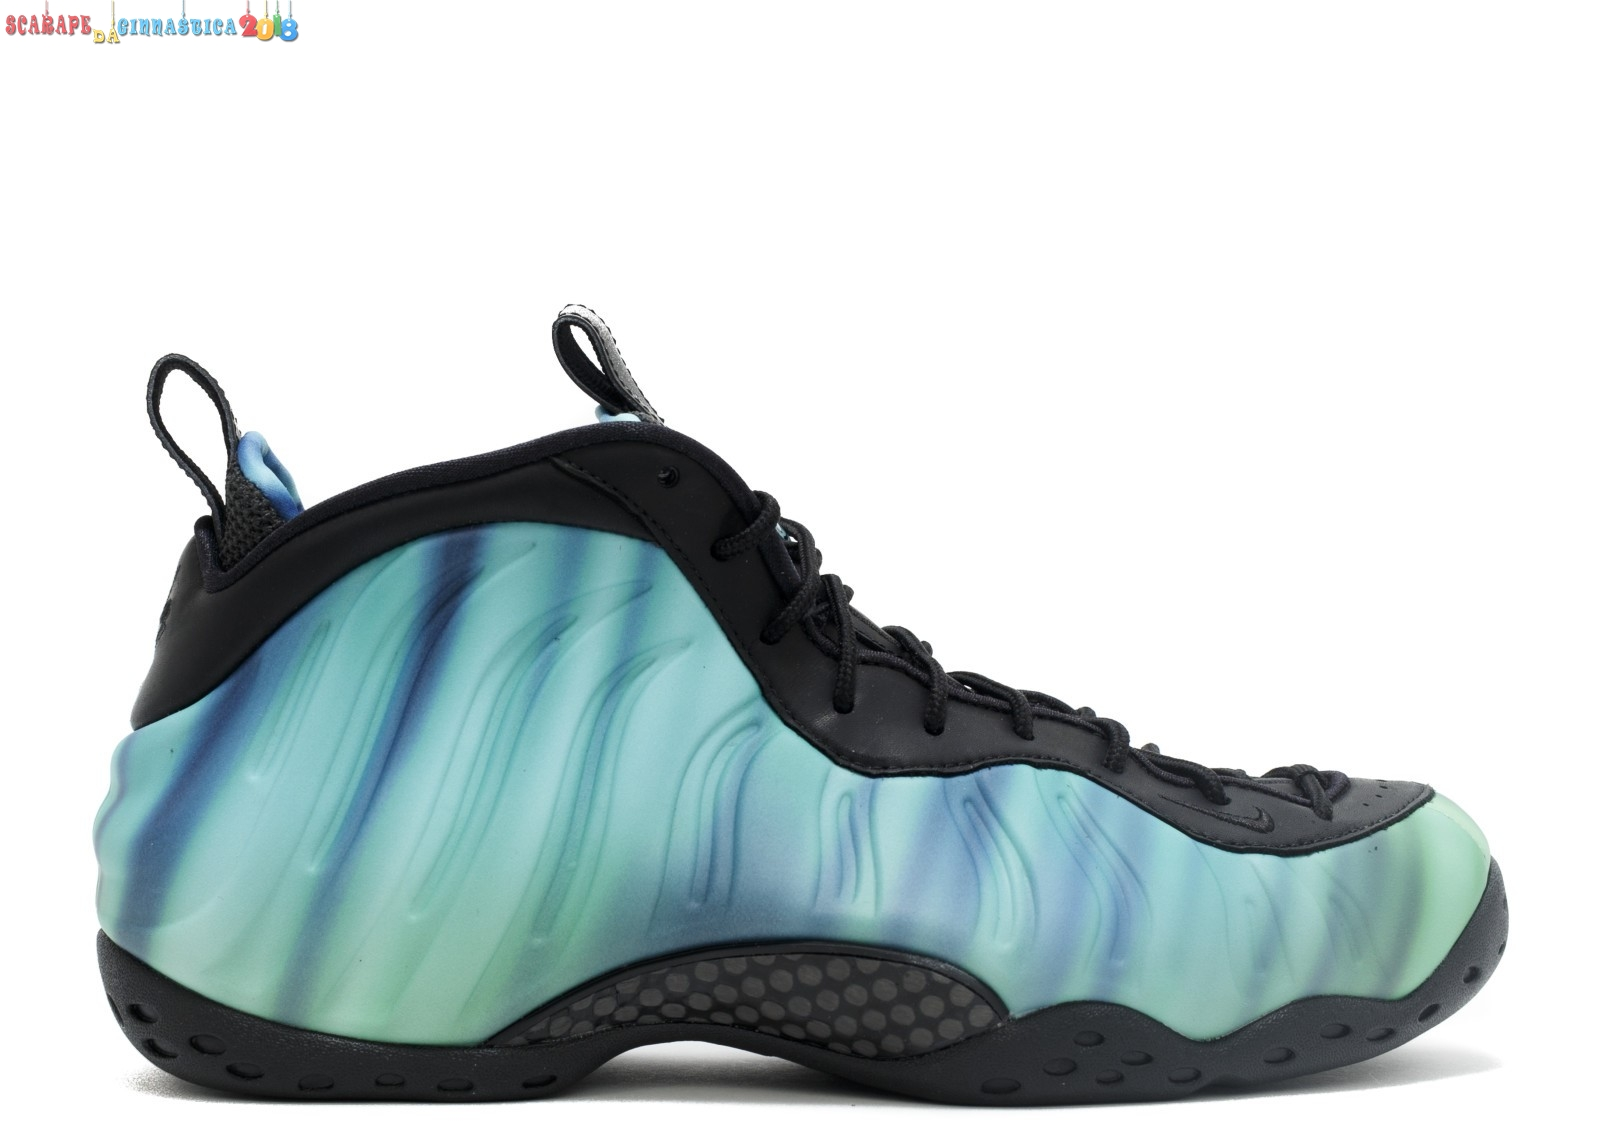 "Nuovi Prodotti Nike Air Foamposite One Prm As Qs ""Northern Lights"" Nero Verde Porpora (840559-001) - Donna - Scarpe da basket"